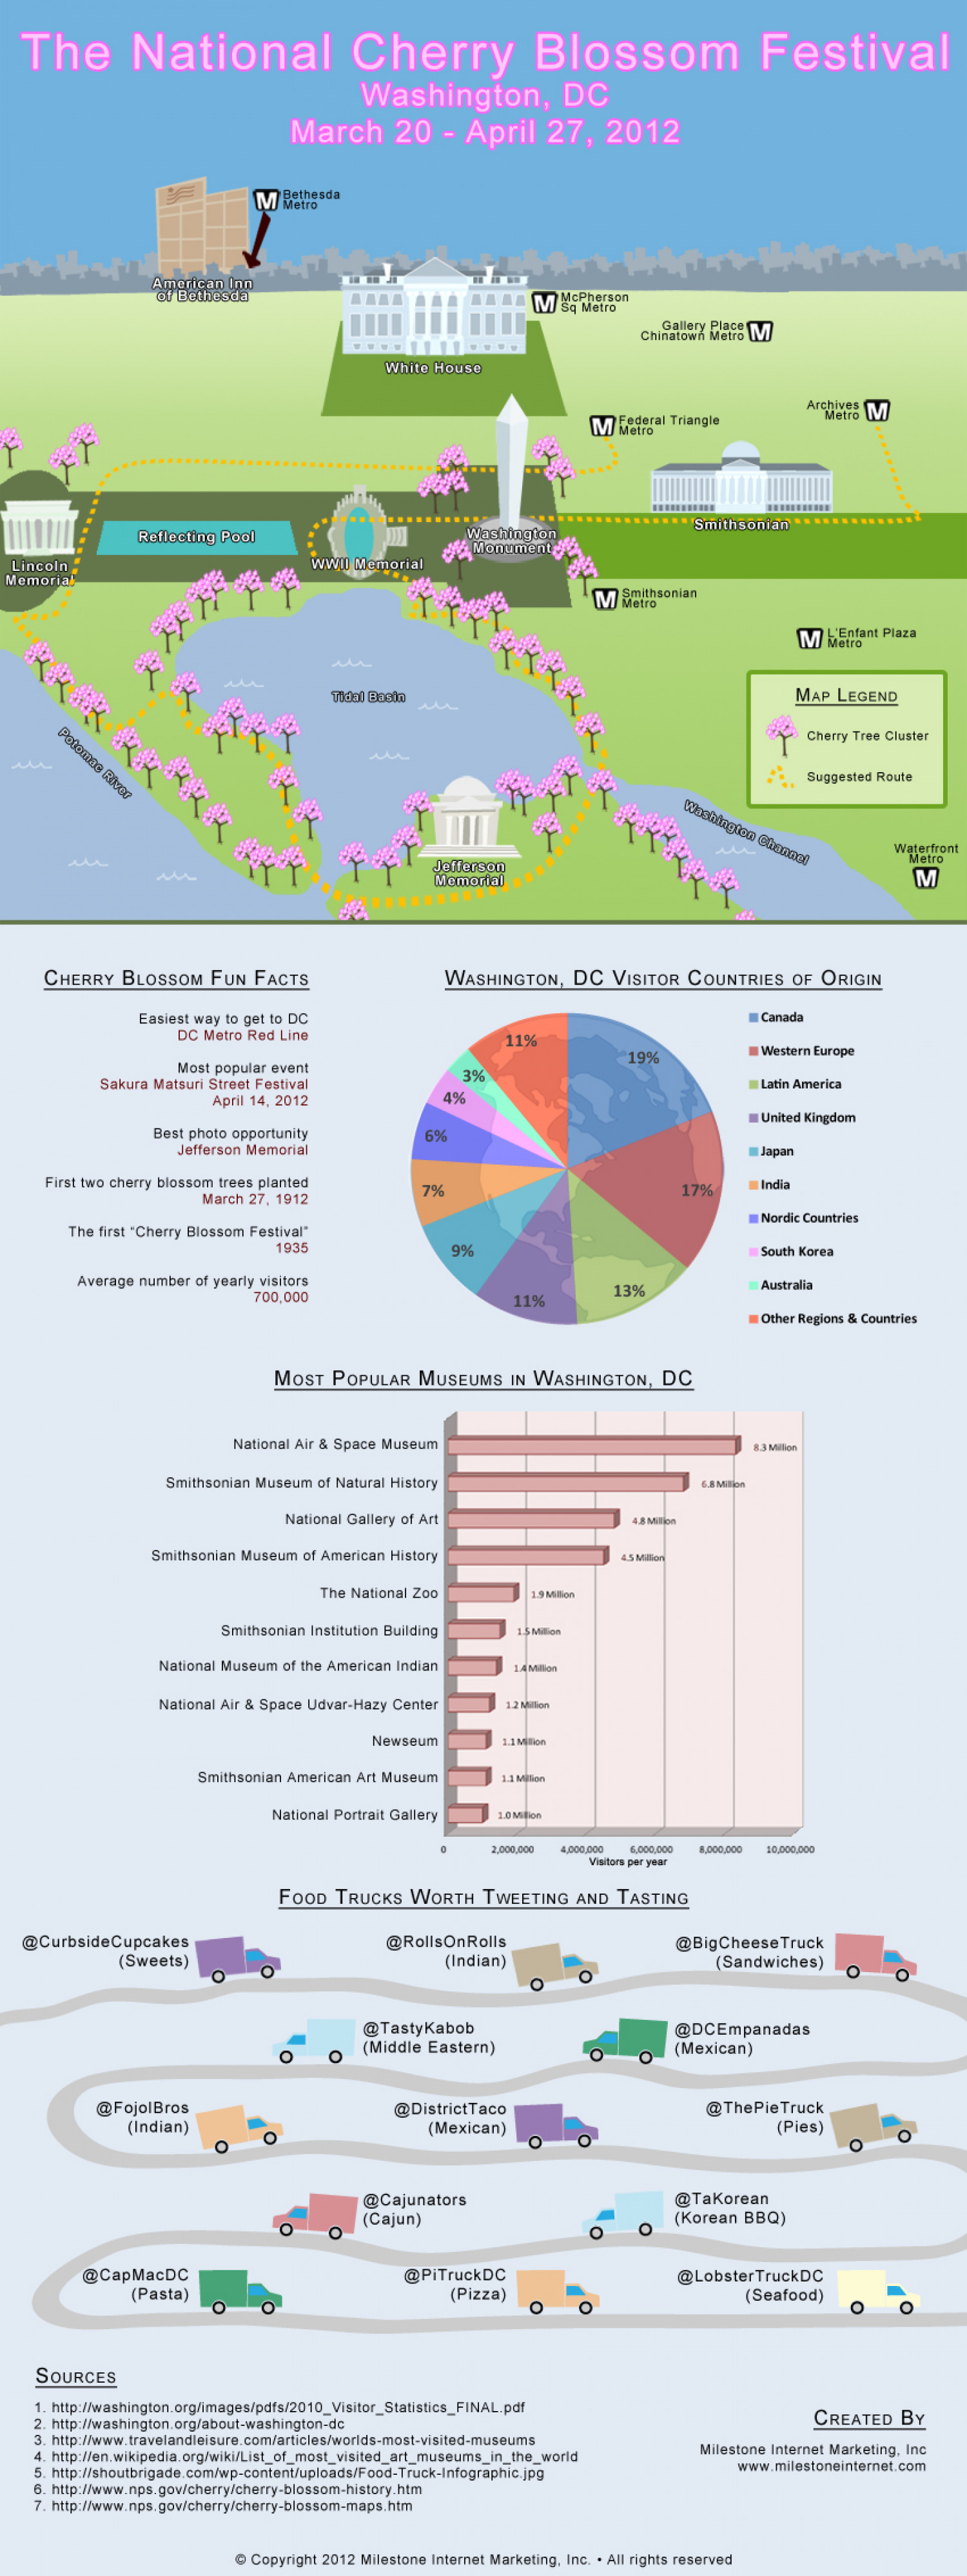 National Cherry Blossom Festival Infographic